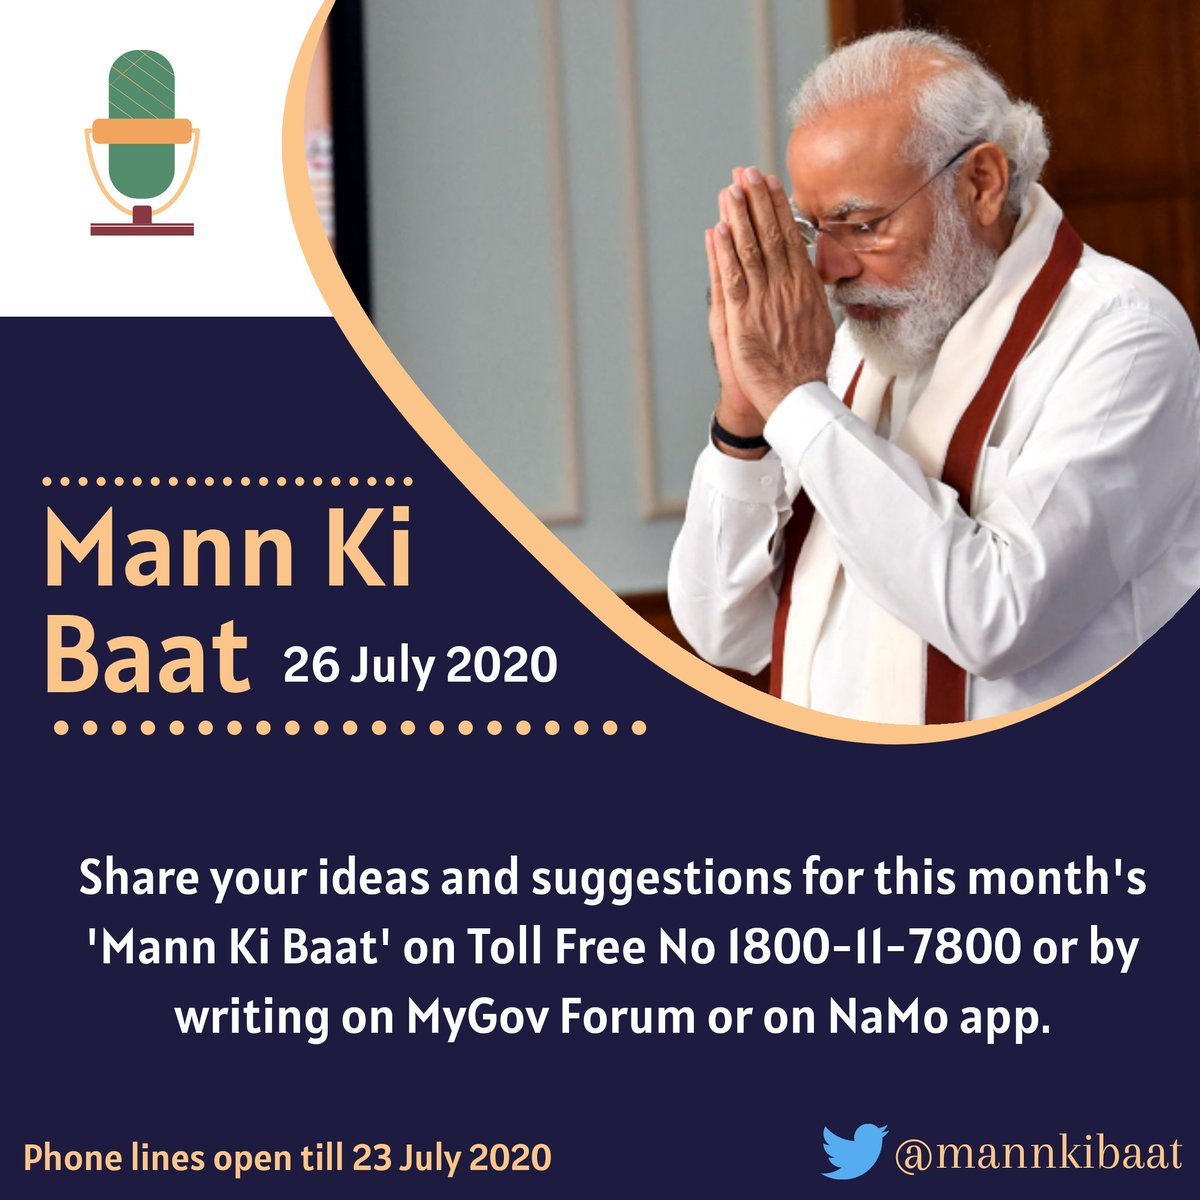 PM Shri @narendramodi will share his 'Mann Ki Baat'on 26 July 2020.  Share your ideas for the upcoming edition of 'Mann Ki Baat'. Dial toll free number 1800-11-7800 to record your message. You can also write on @mygovindia forum or on NaMo app.  #MannKiBaat https://t.co/KeUqOjfpuU